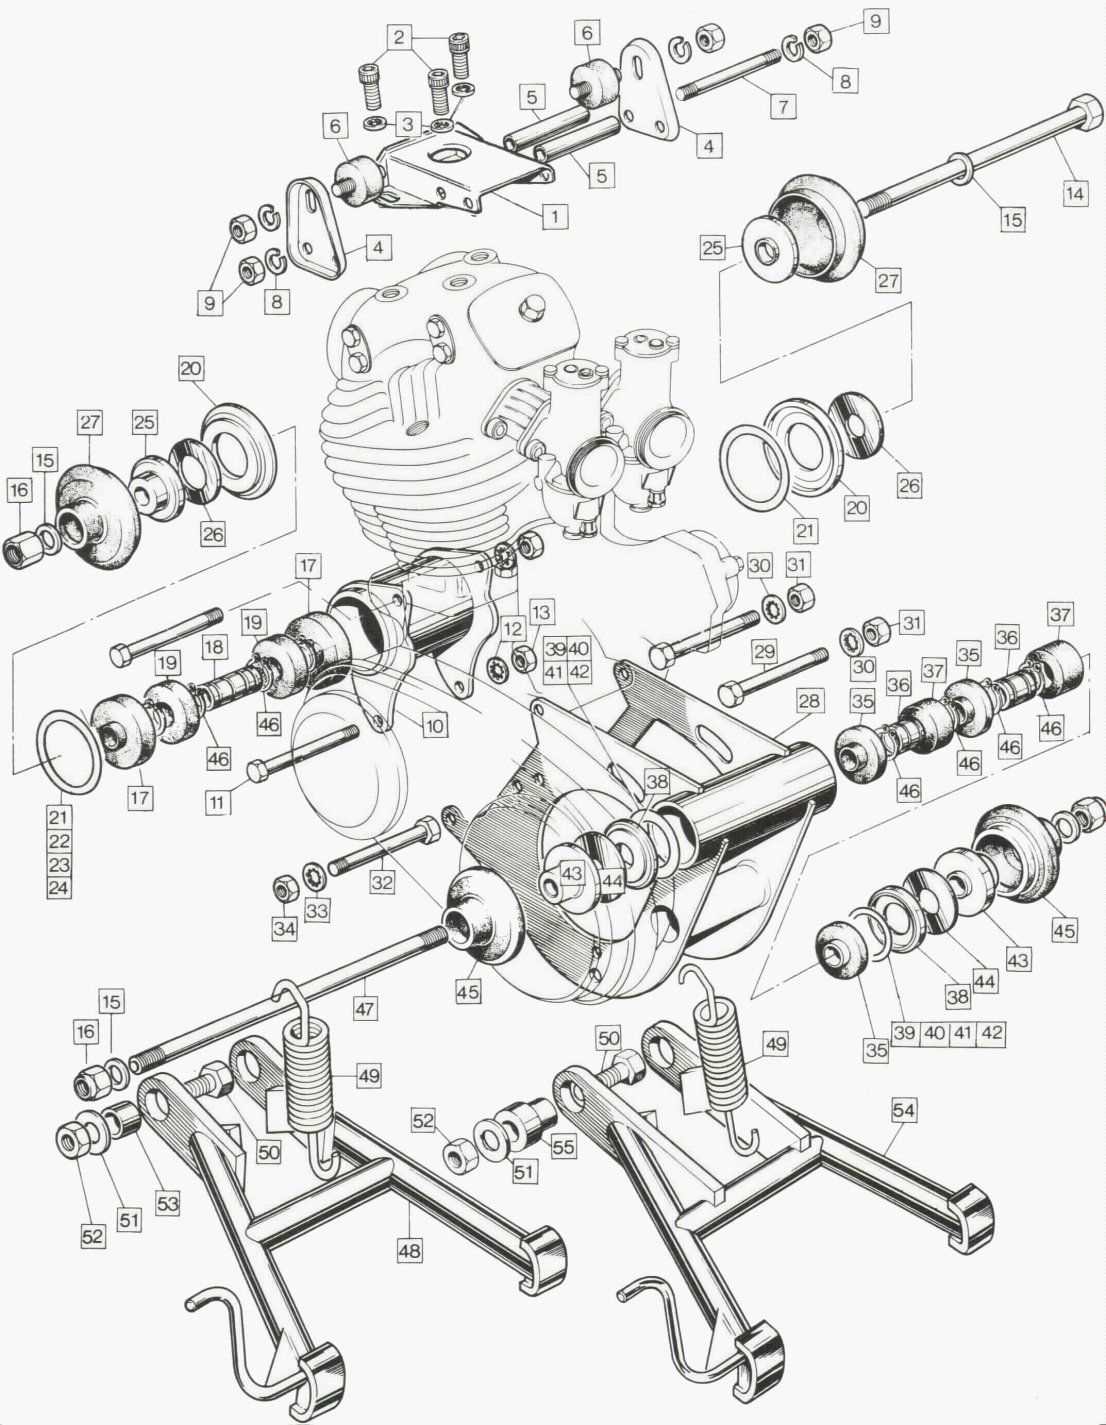 1973 g13 further 343680 Toyota Exploded View as well Ac Generator Wiring Diagram in addition Karcher 2400 11943010 Pressure Washer Parts C 33388 33389 33656 further 14  petition. on exploded view of engine parts